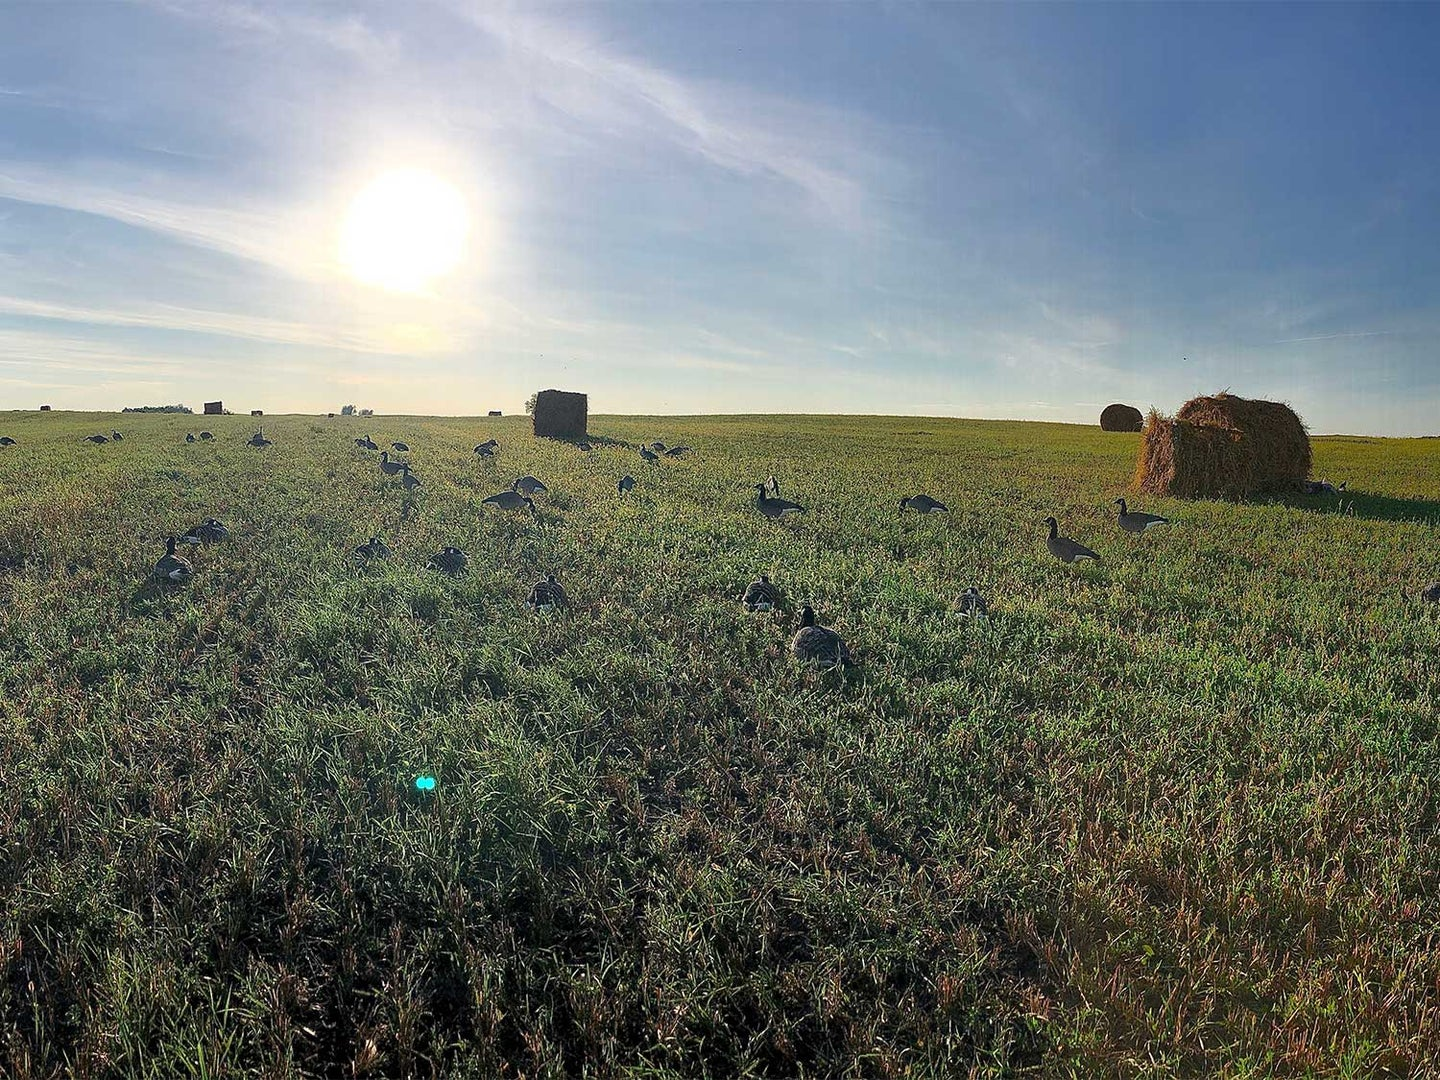 A large field with hay bales and geese.